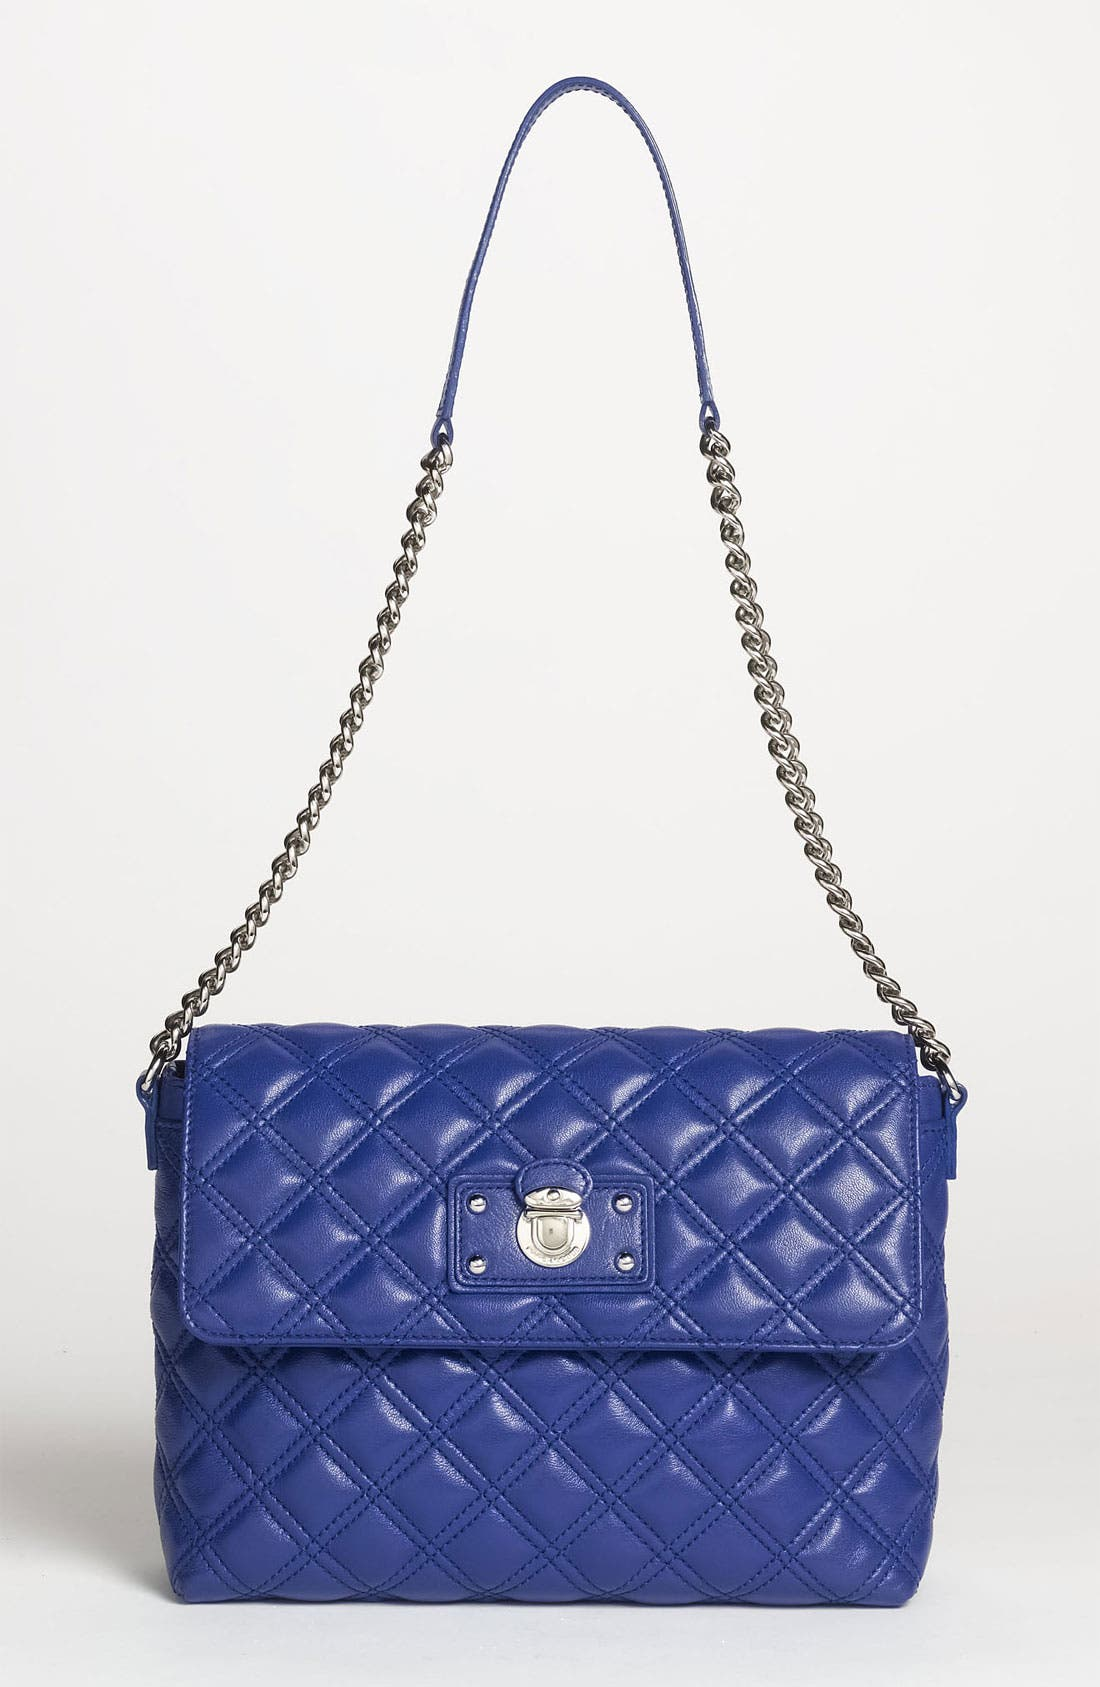 Main Image - MARC JACOBS 'Quilting - Large Single' Leather Shoulder Bag